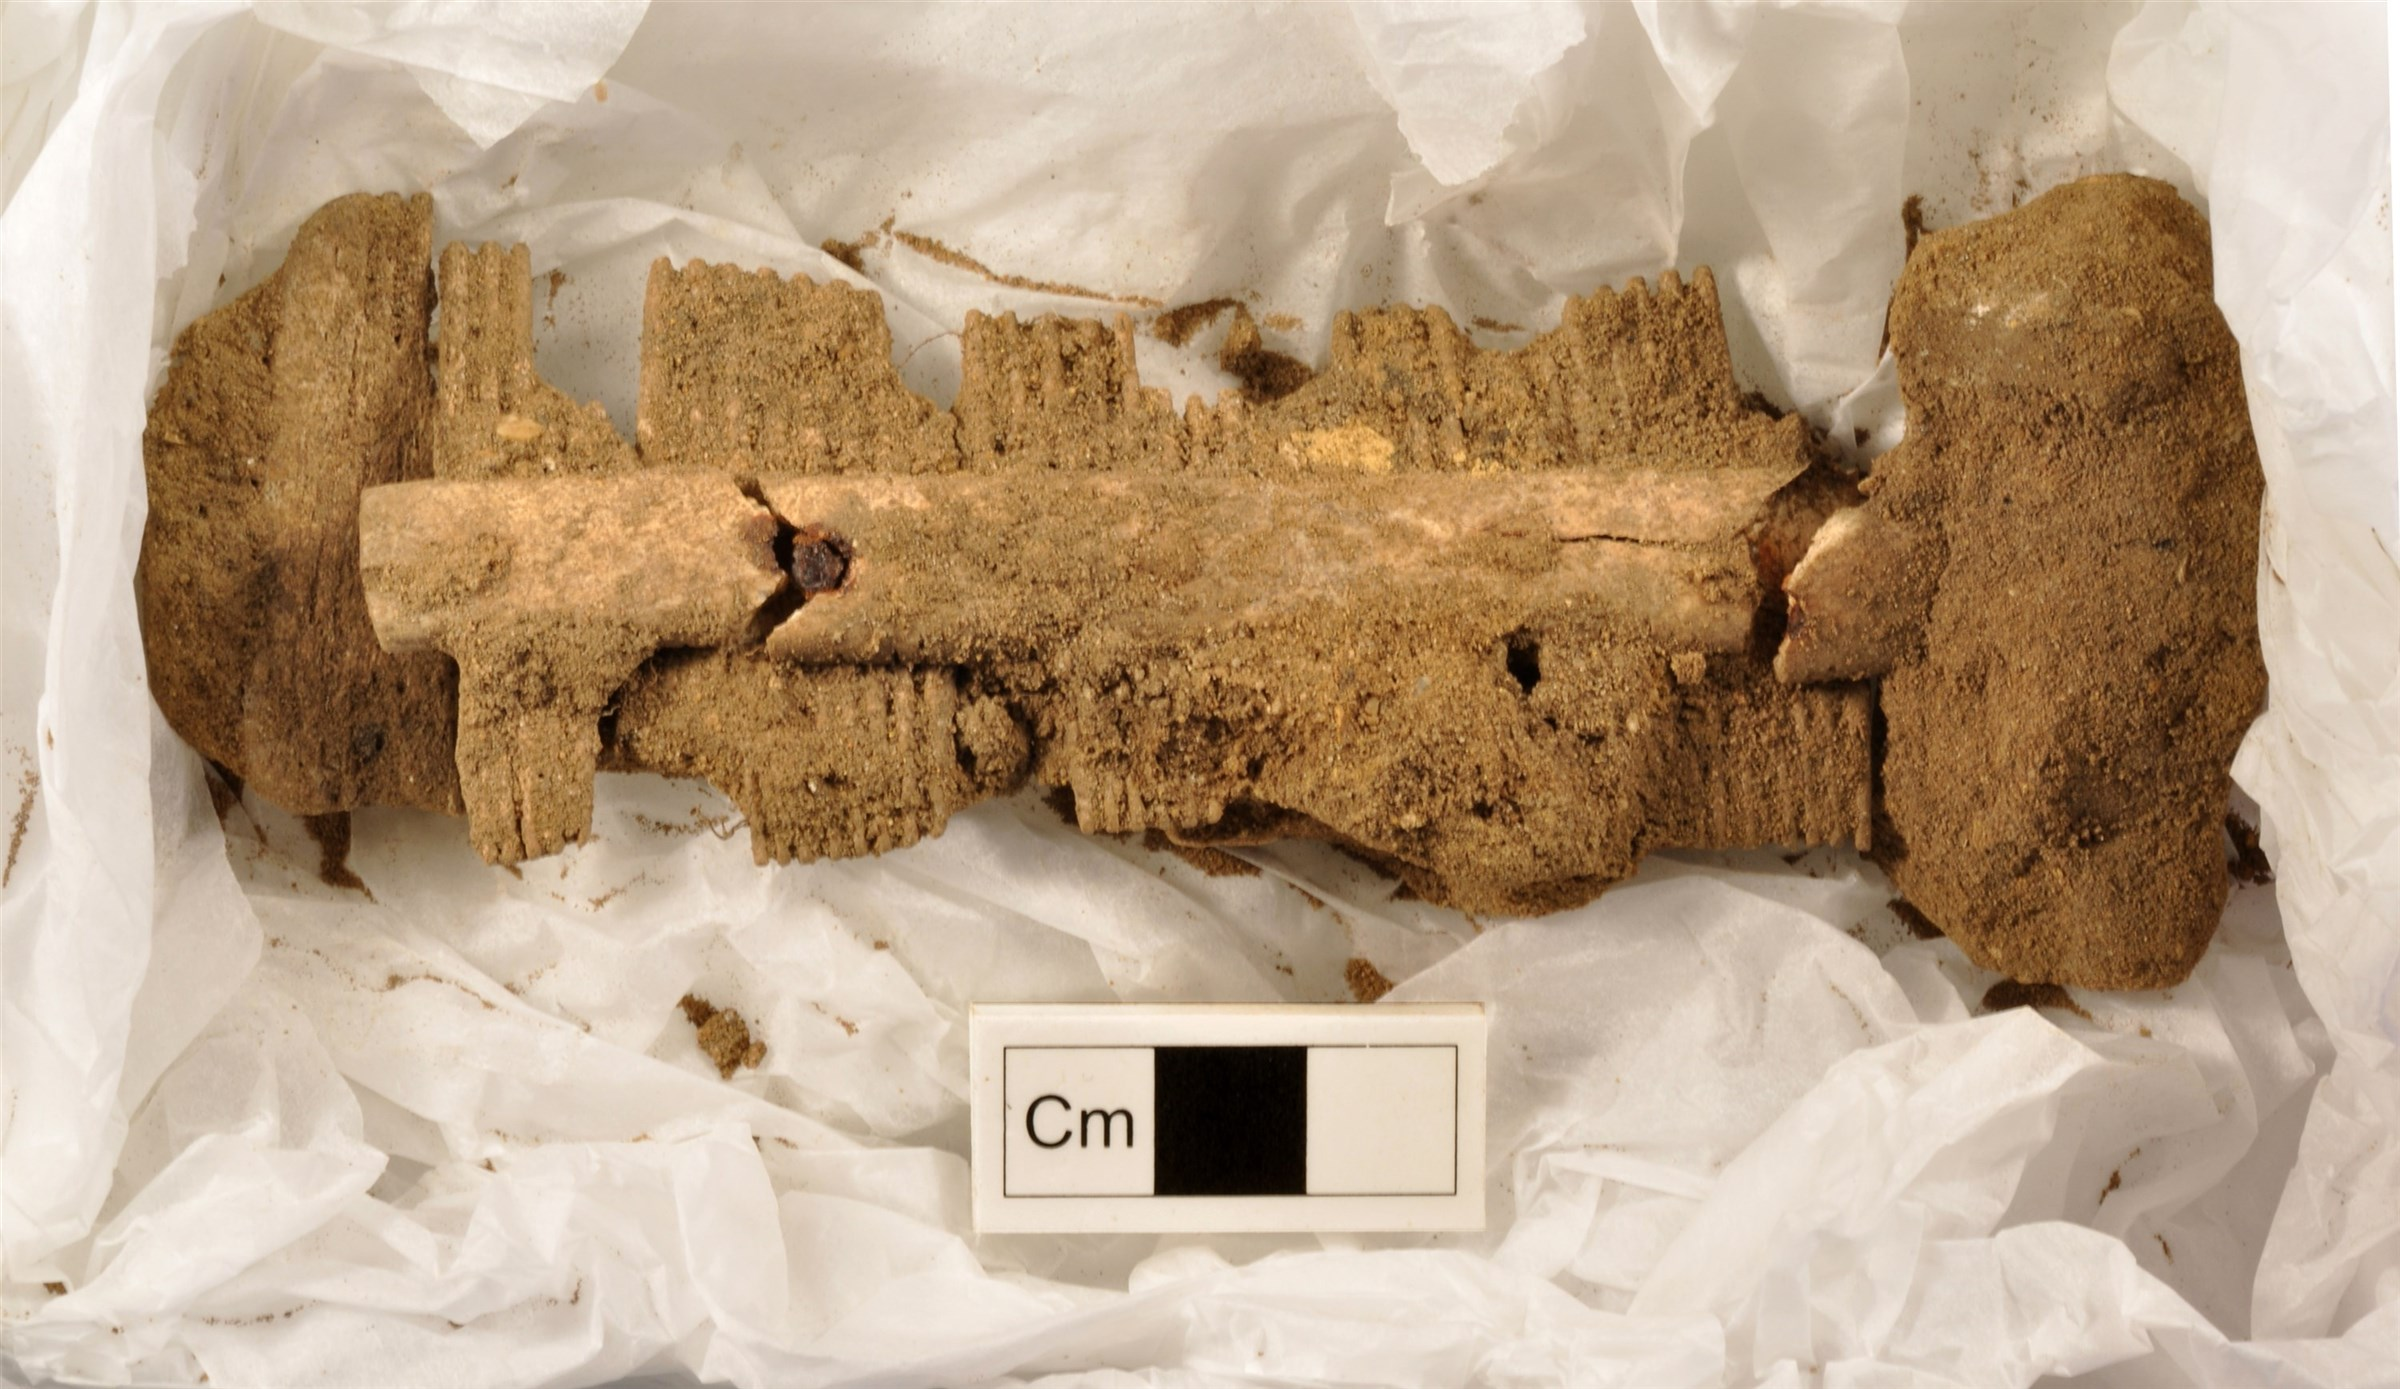 Anglo-Saxon bone comb from the excavations at Culford